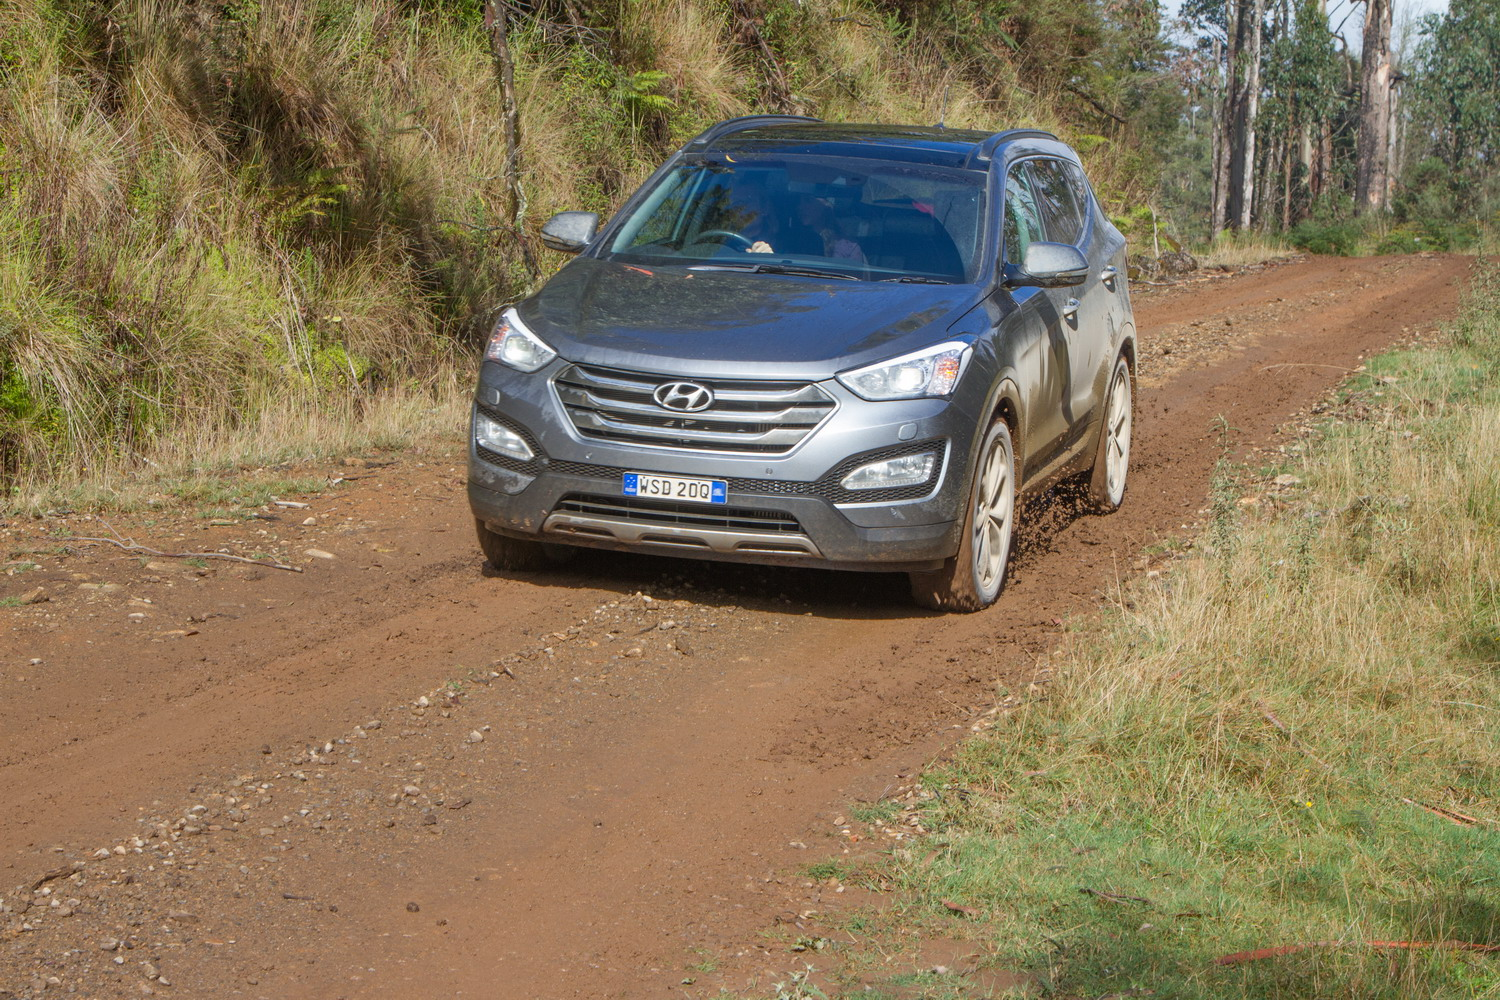 2015 Hyundai Santa Fe Highlander off-road tech test